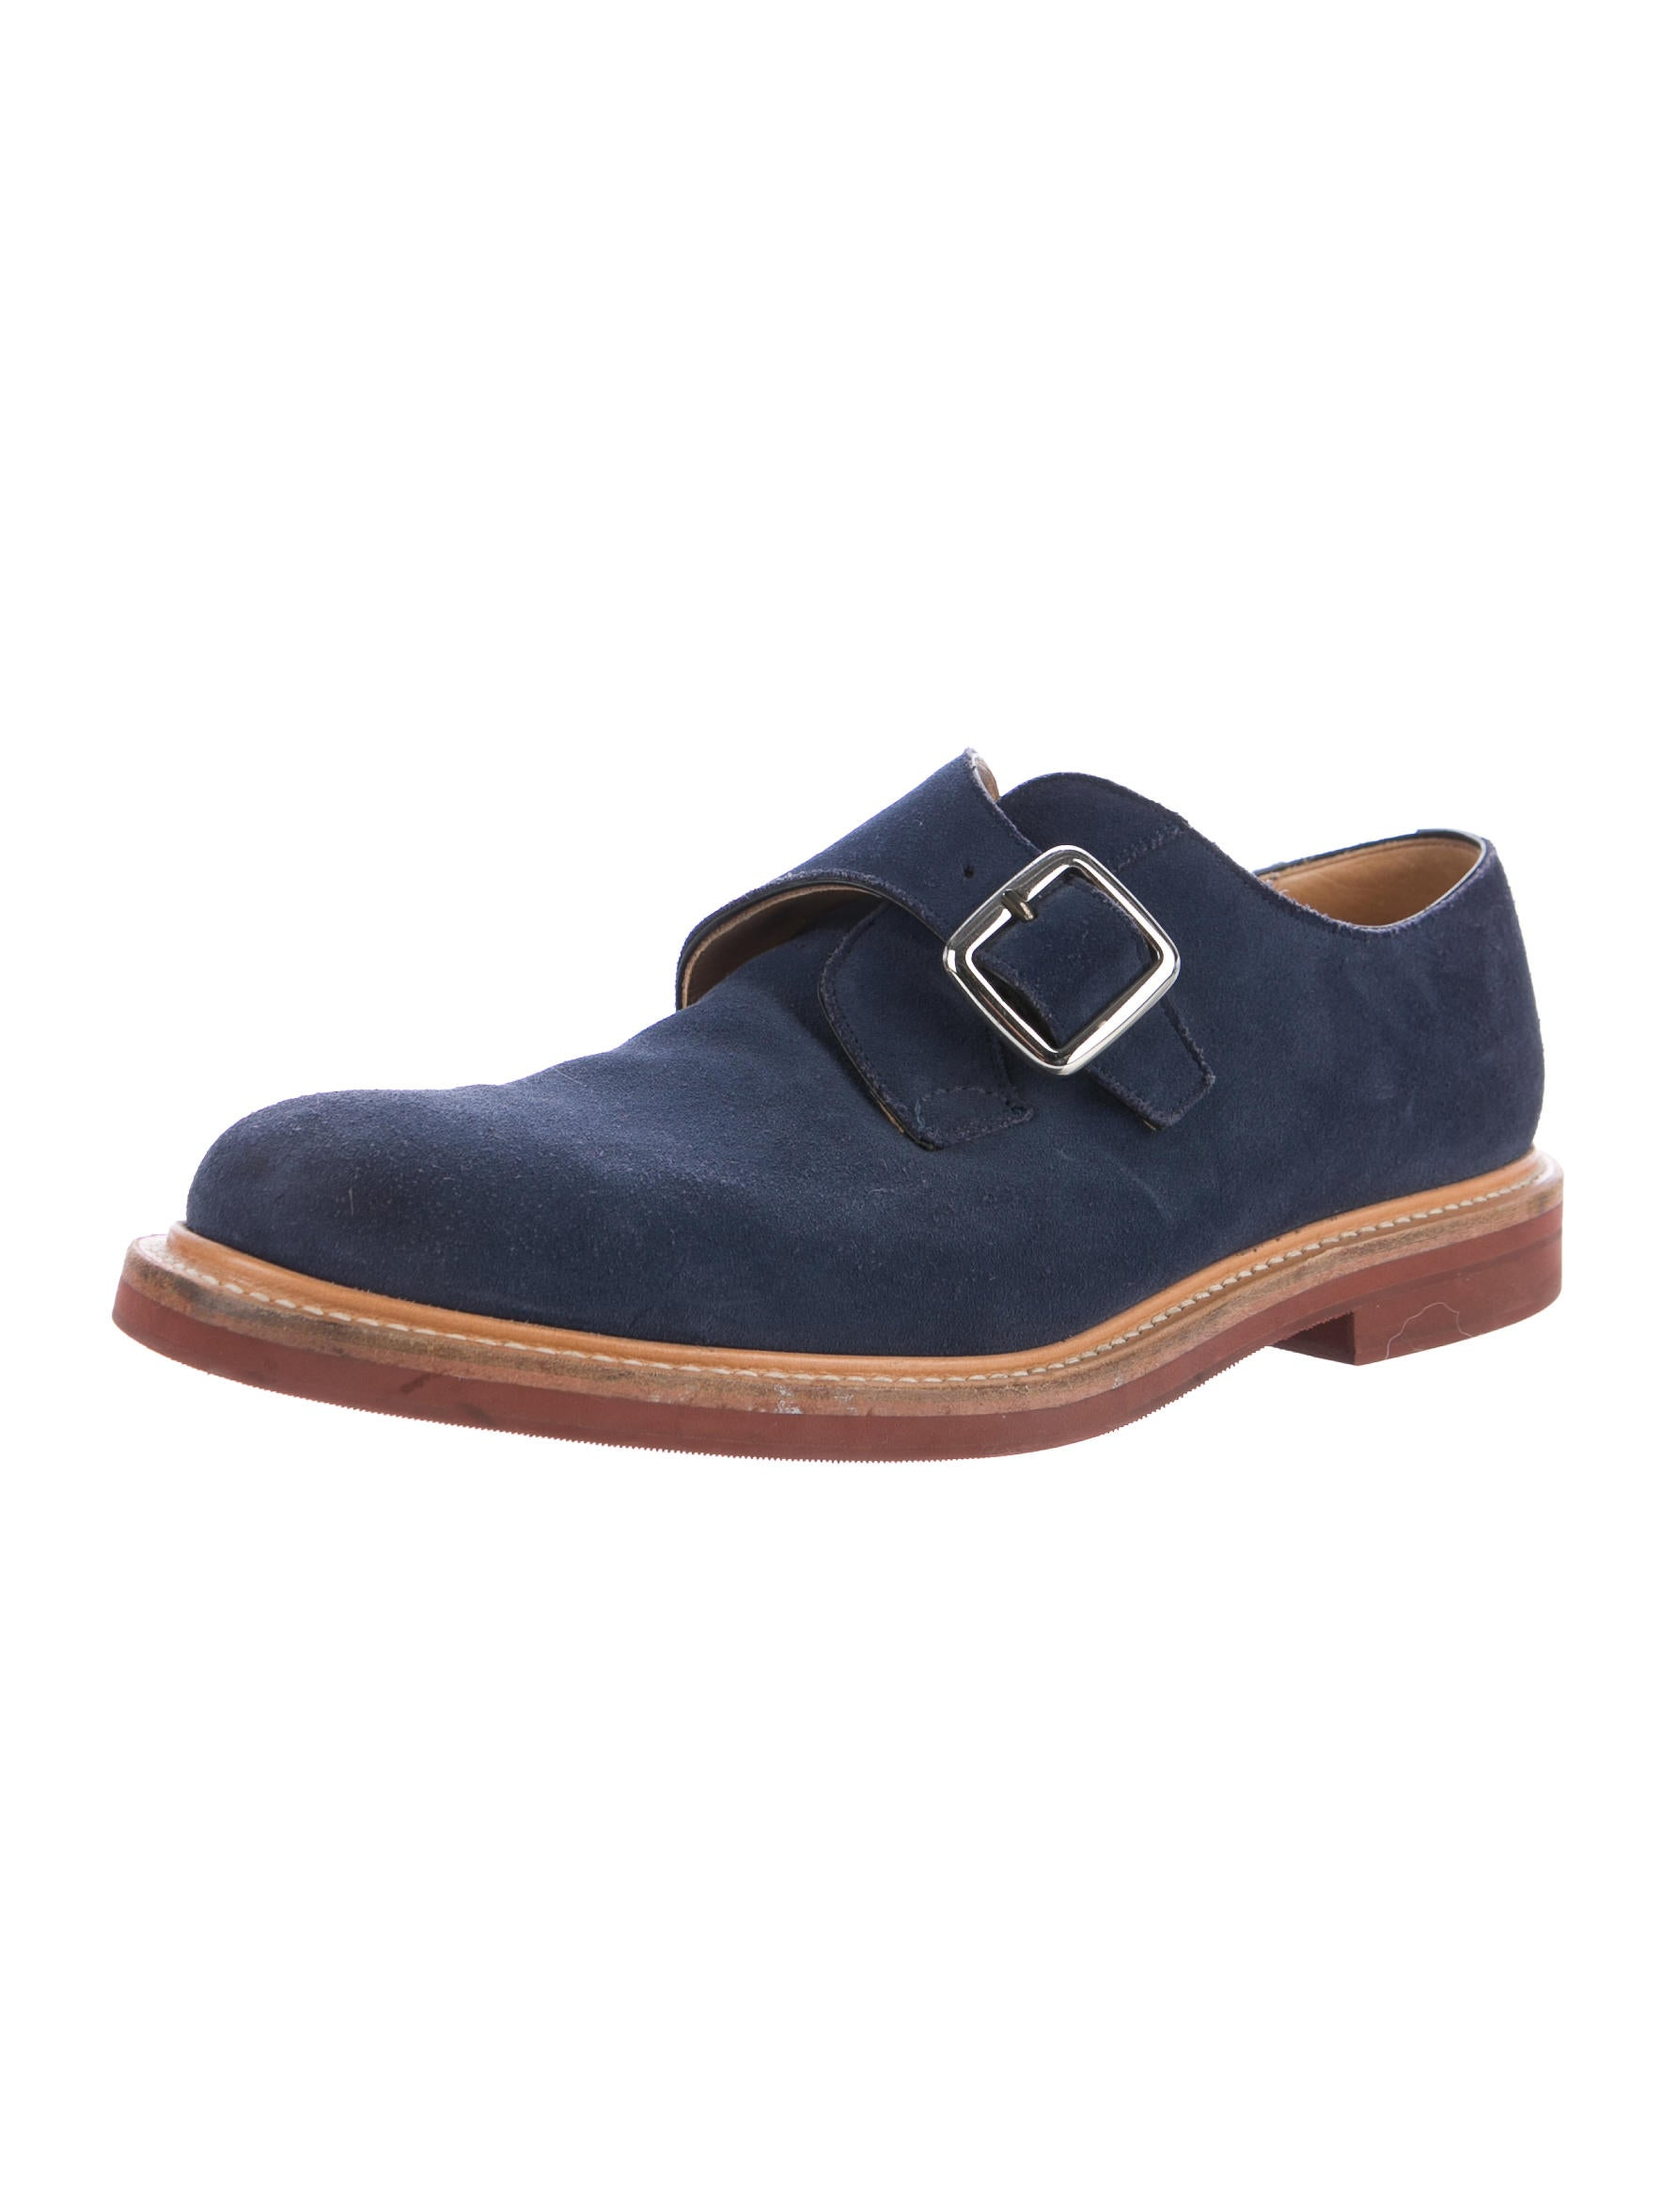 Opt for brown, black or oxblood double monk strap shoes with jeans that are dark. Play around with suede and/or tan monk strap shoes when wearing pale pieces. Experiment when wearing a simple top and jeans by trying blue, grey or patterned versions.